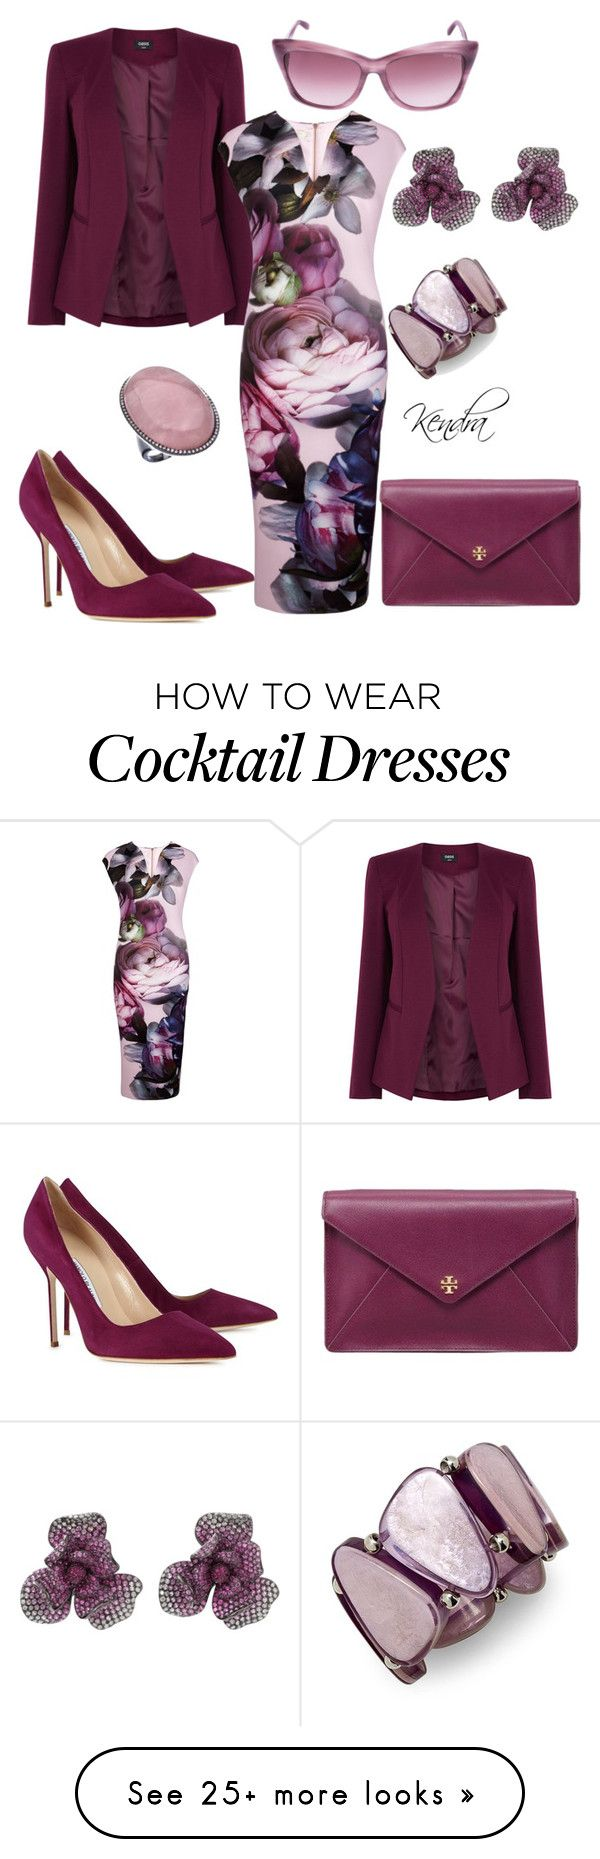 """Happy Wednesday"" by k1974johnson1117 on Polyvore featuring moda, Oasis, Ted Baker, Tory Burch, Manolo Blahnik, Wendy Yue, Madison Precious Jewels, Tom Ford y Style & Co."